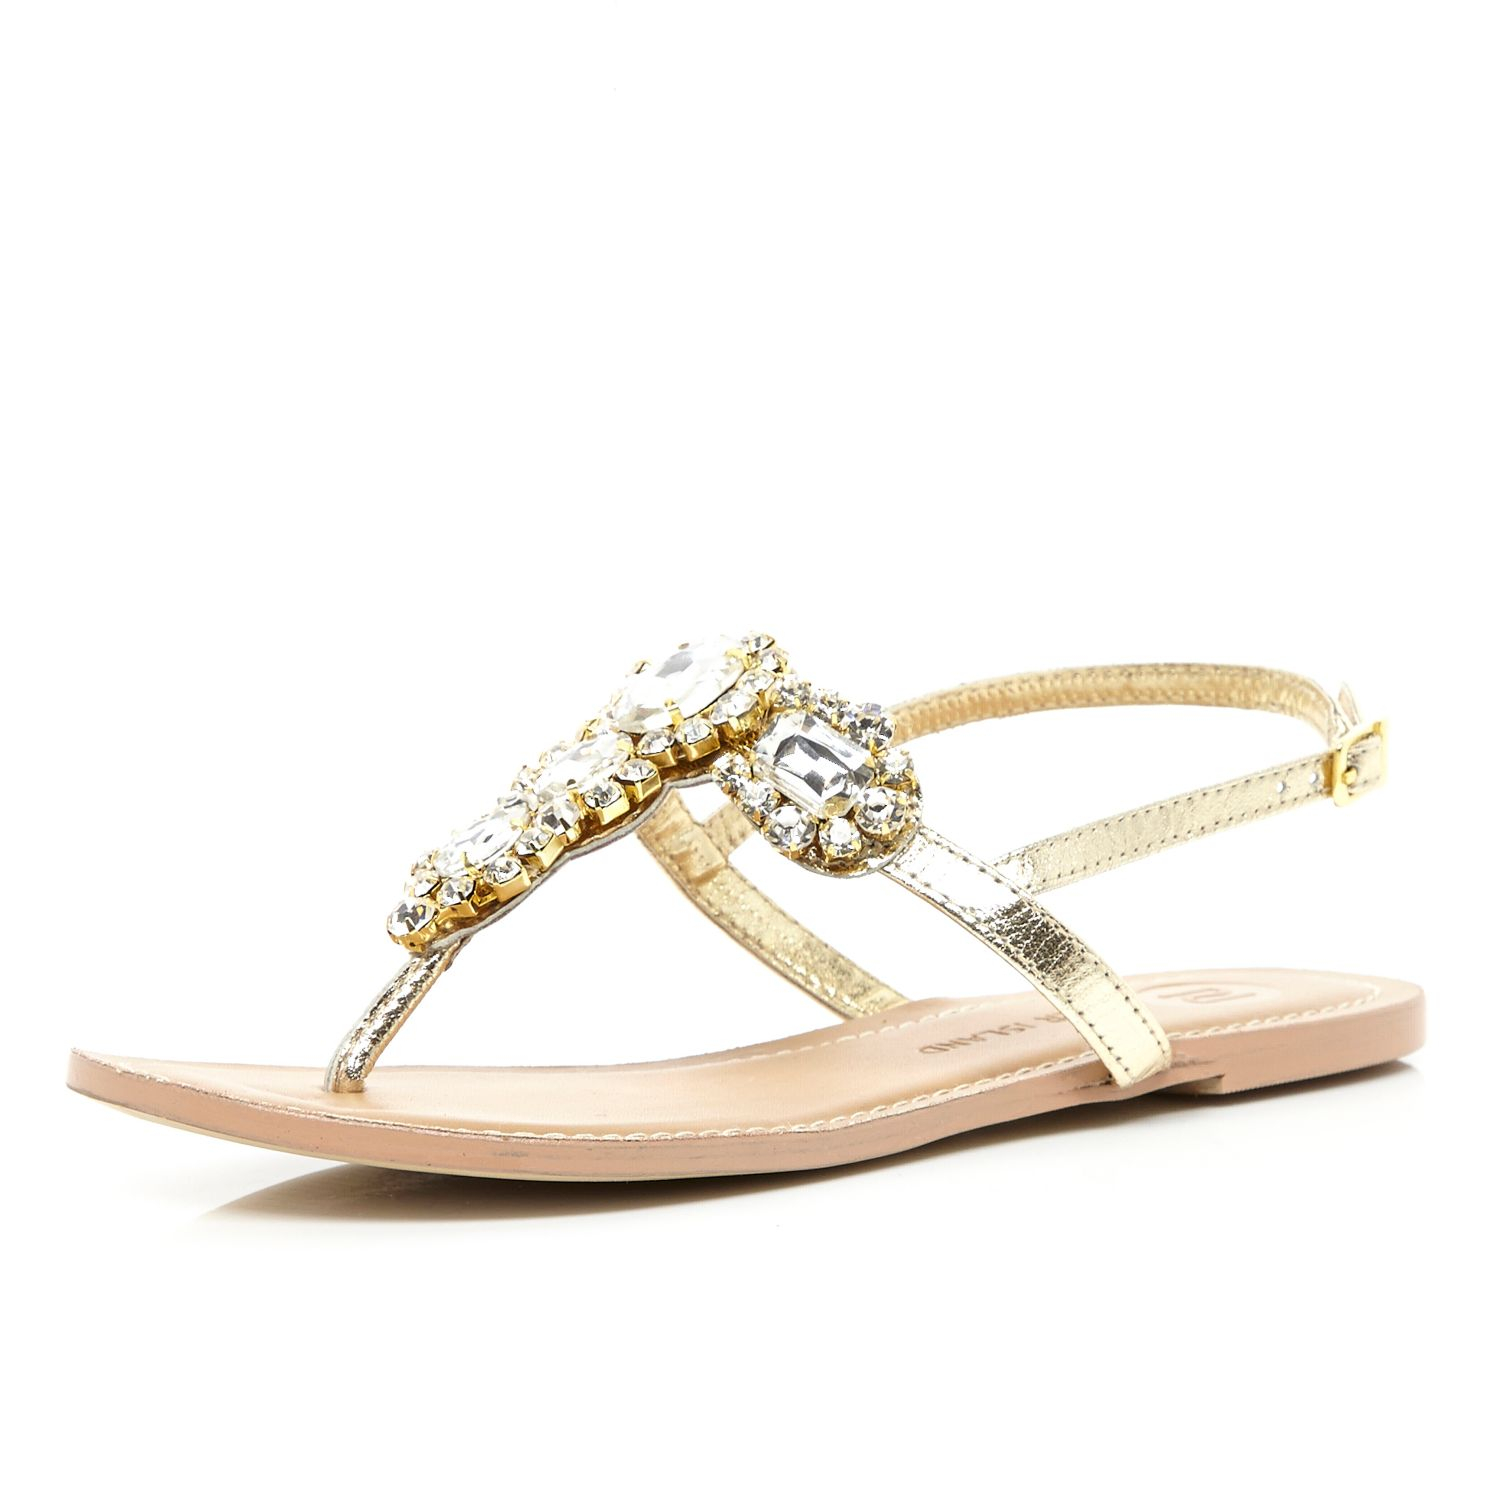 Simple The Touch Ups Melanie Sandals In Gold Feature Kitten Heel Leather